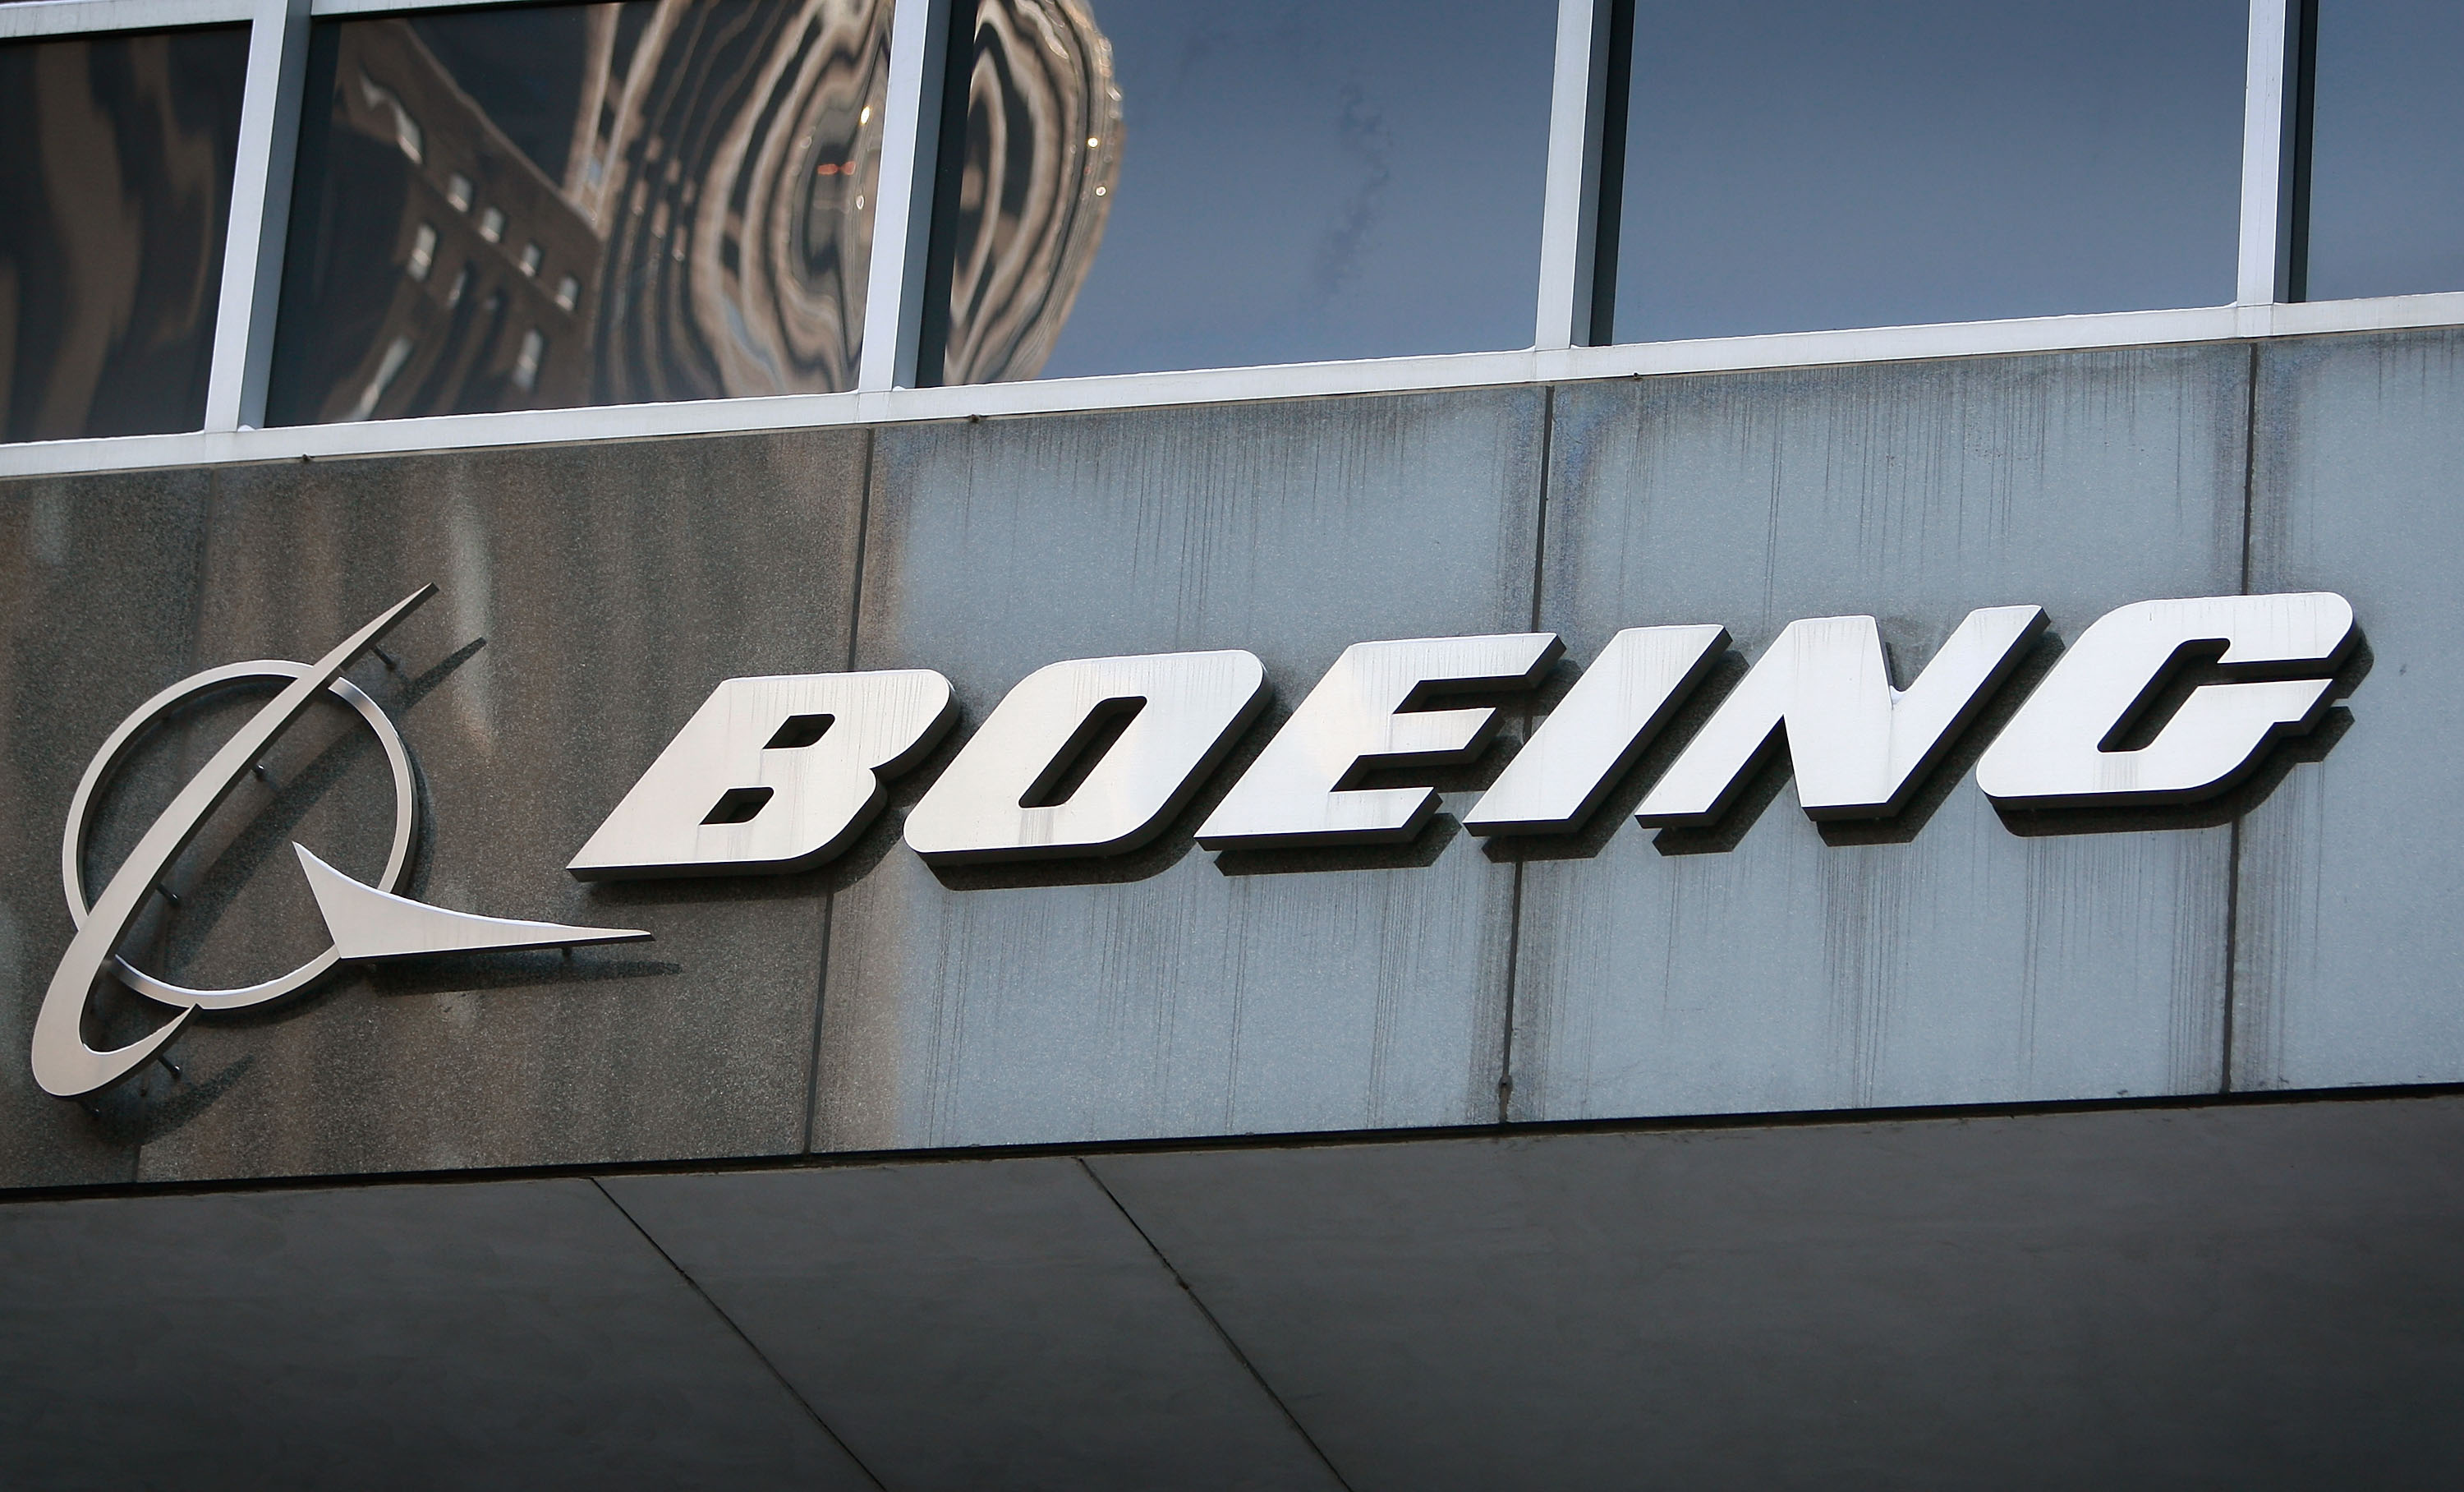 Boeing's logo on display in Chicago this file photo from 2009.